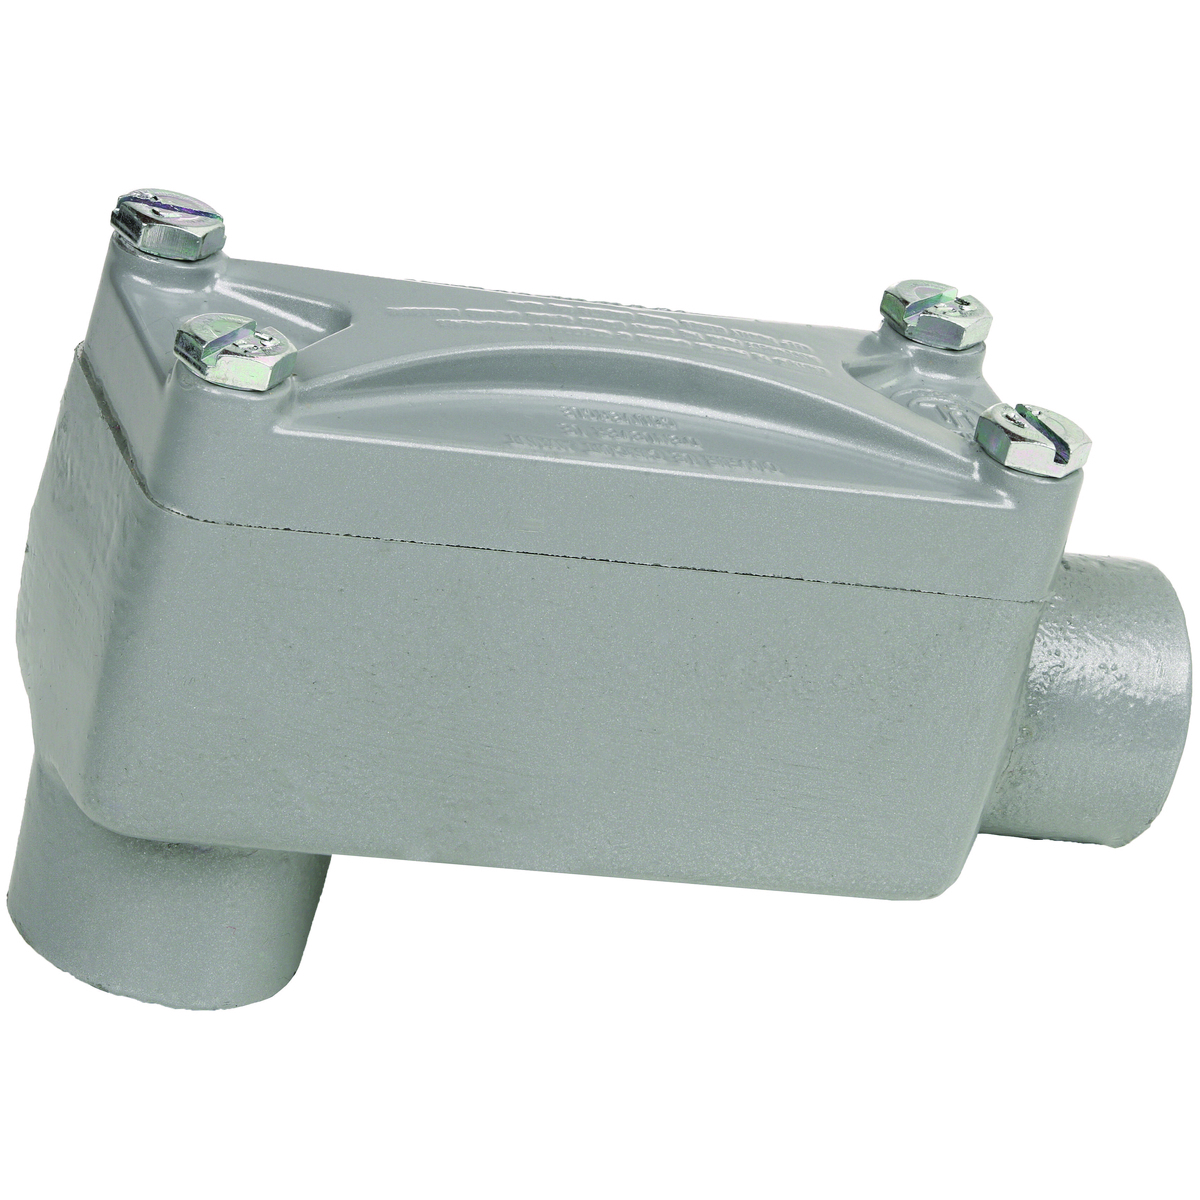 """1 Crouse Hinds LBH20 Explosion Proof Conduit Pulling Elbow 3//4/"""" Elbd75 for sale online"""